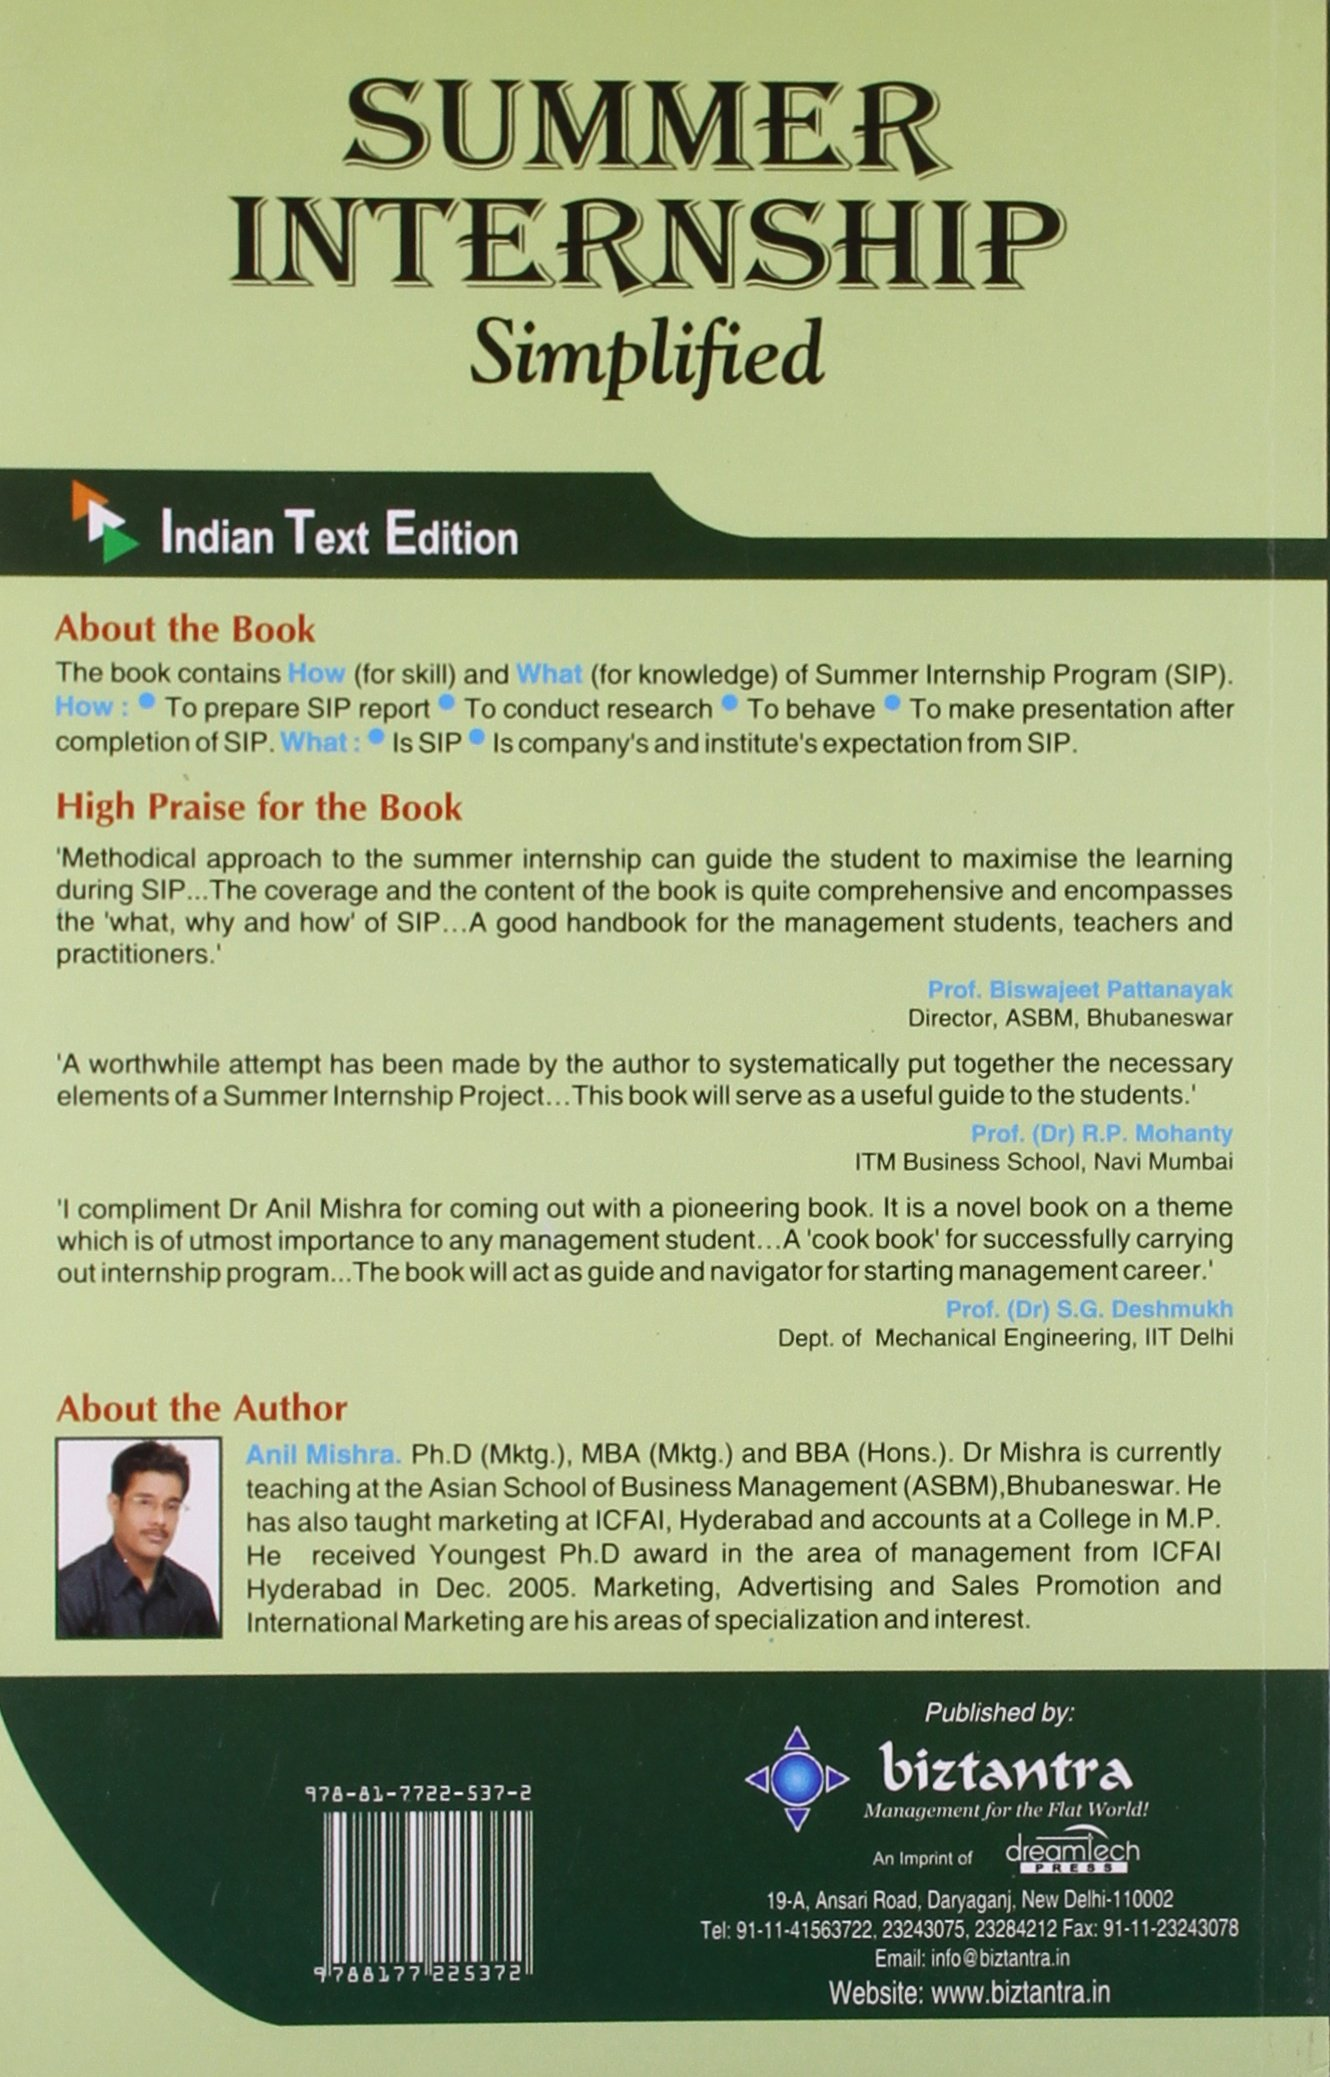 Buy Summer Internship Simplified Book Online at Low Prices